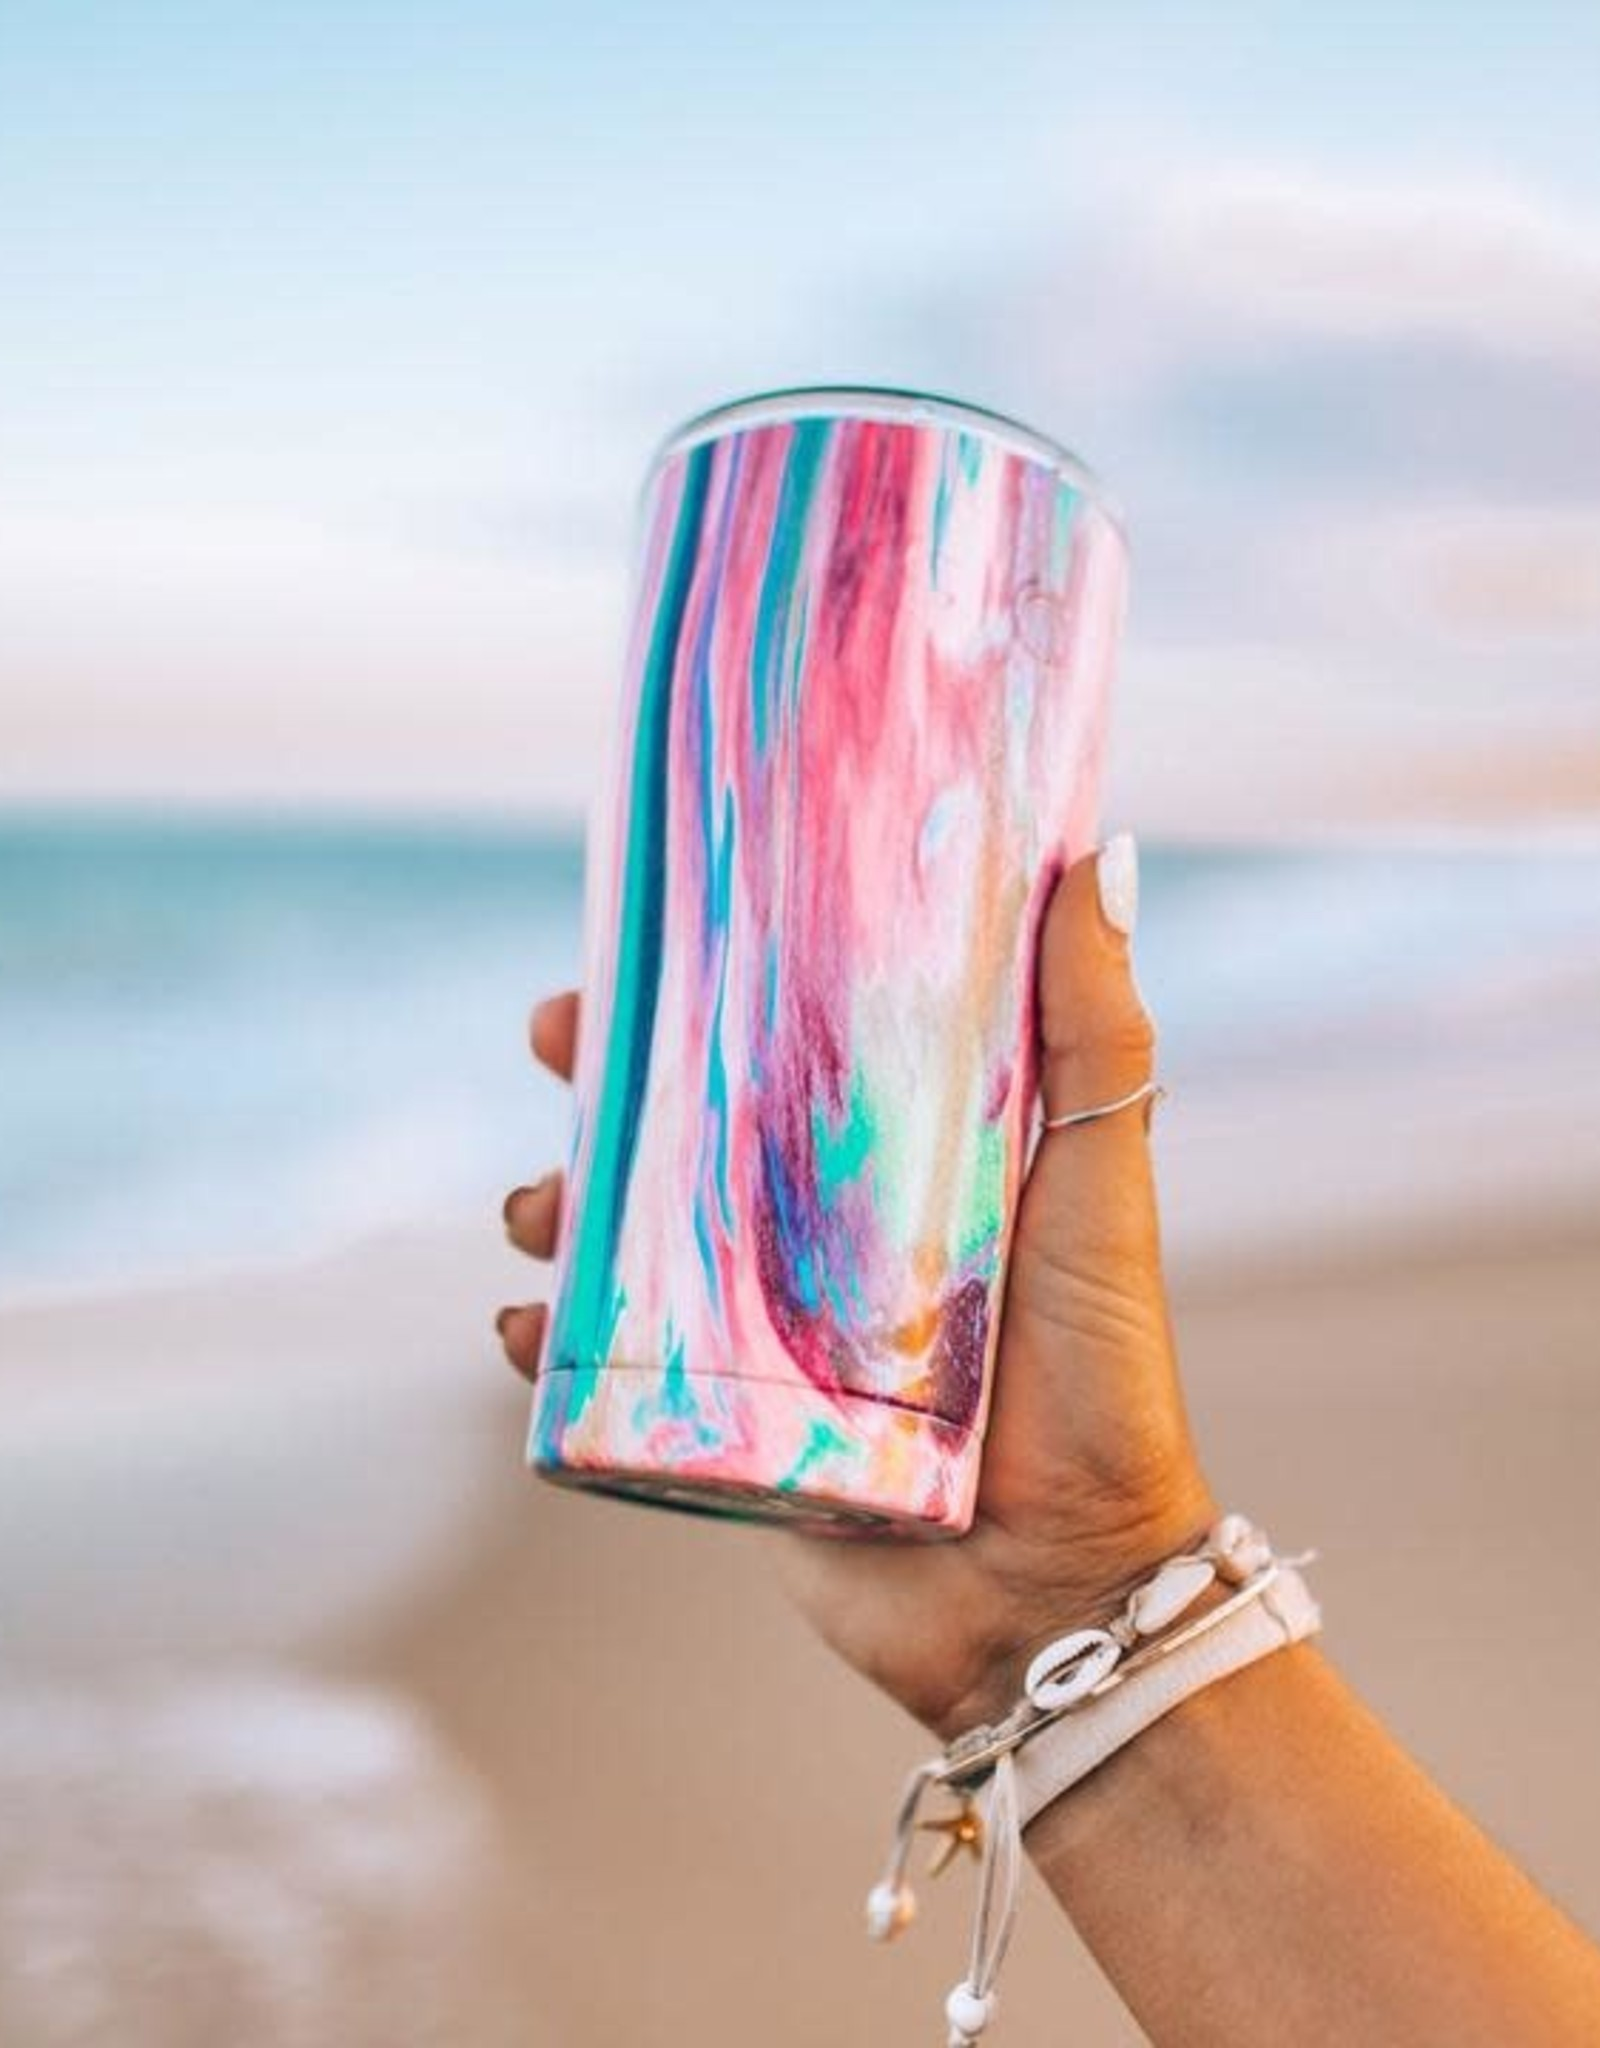 SIC 20 Oz. Cotton Candy Stainless Steel Tumbler